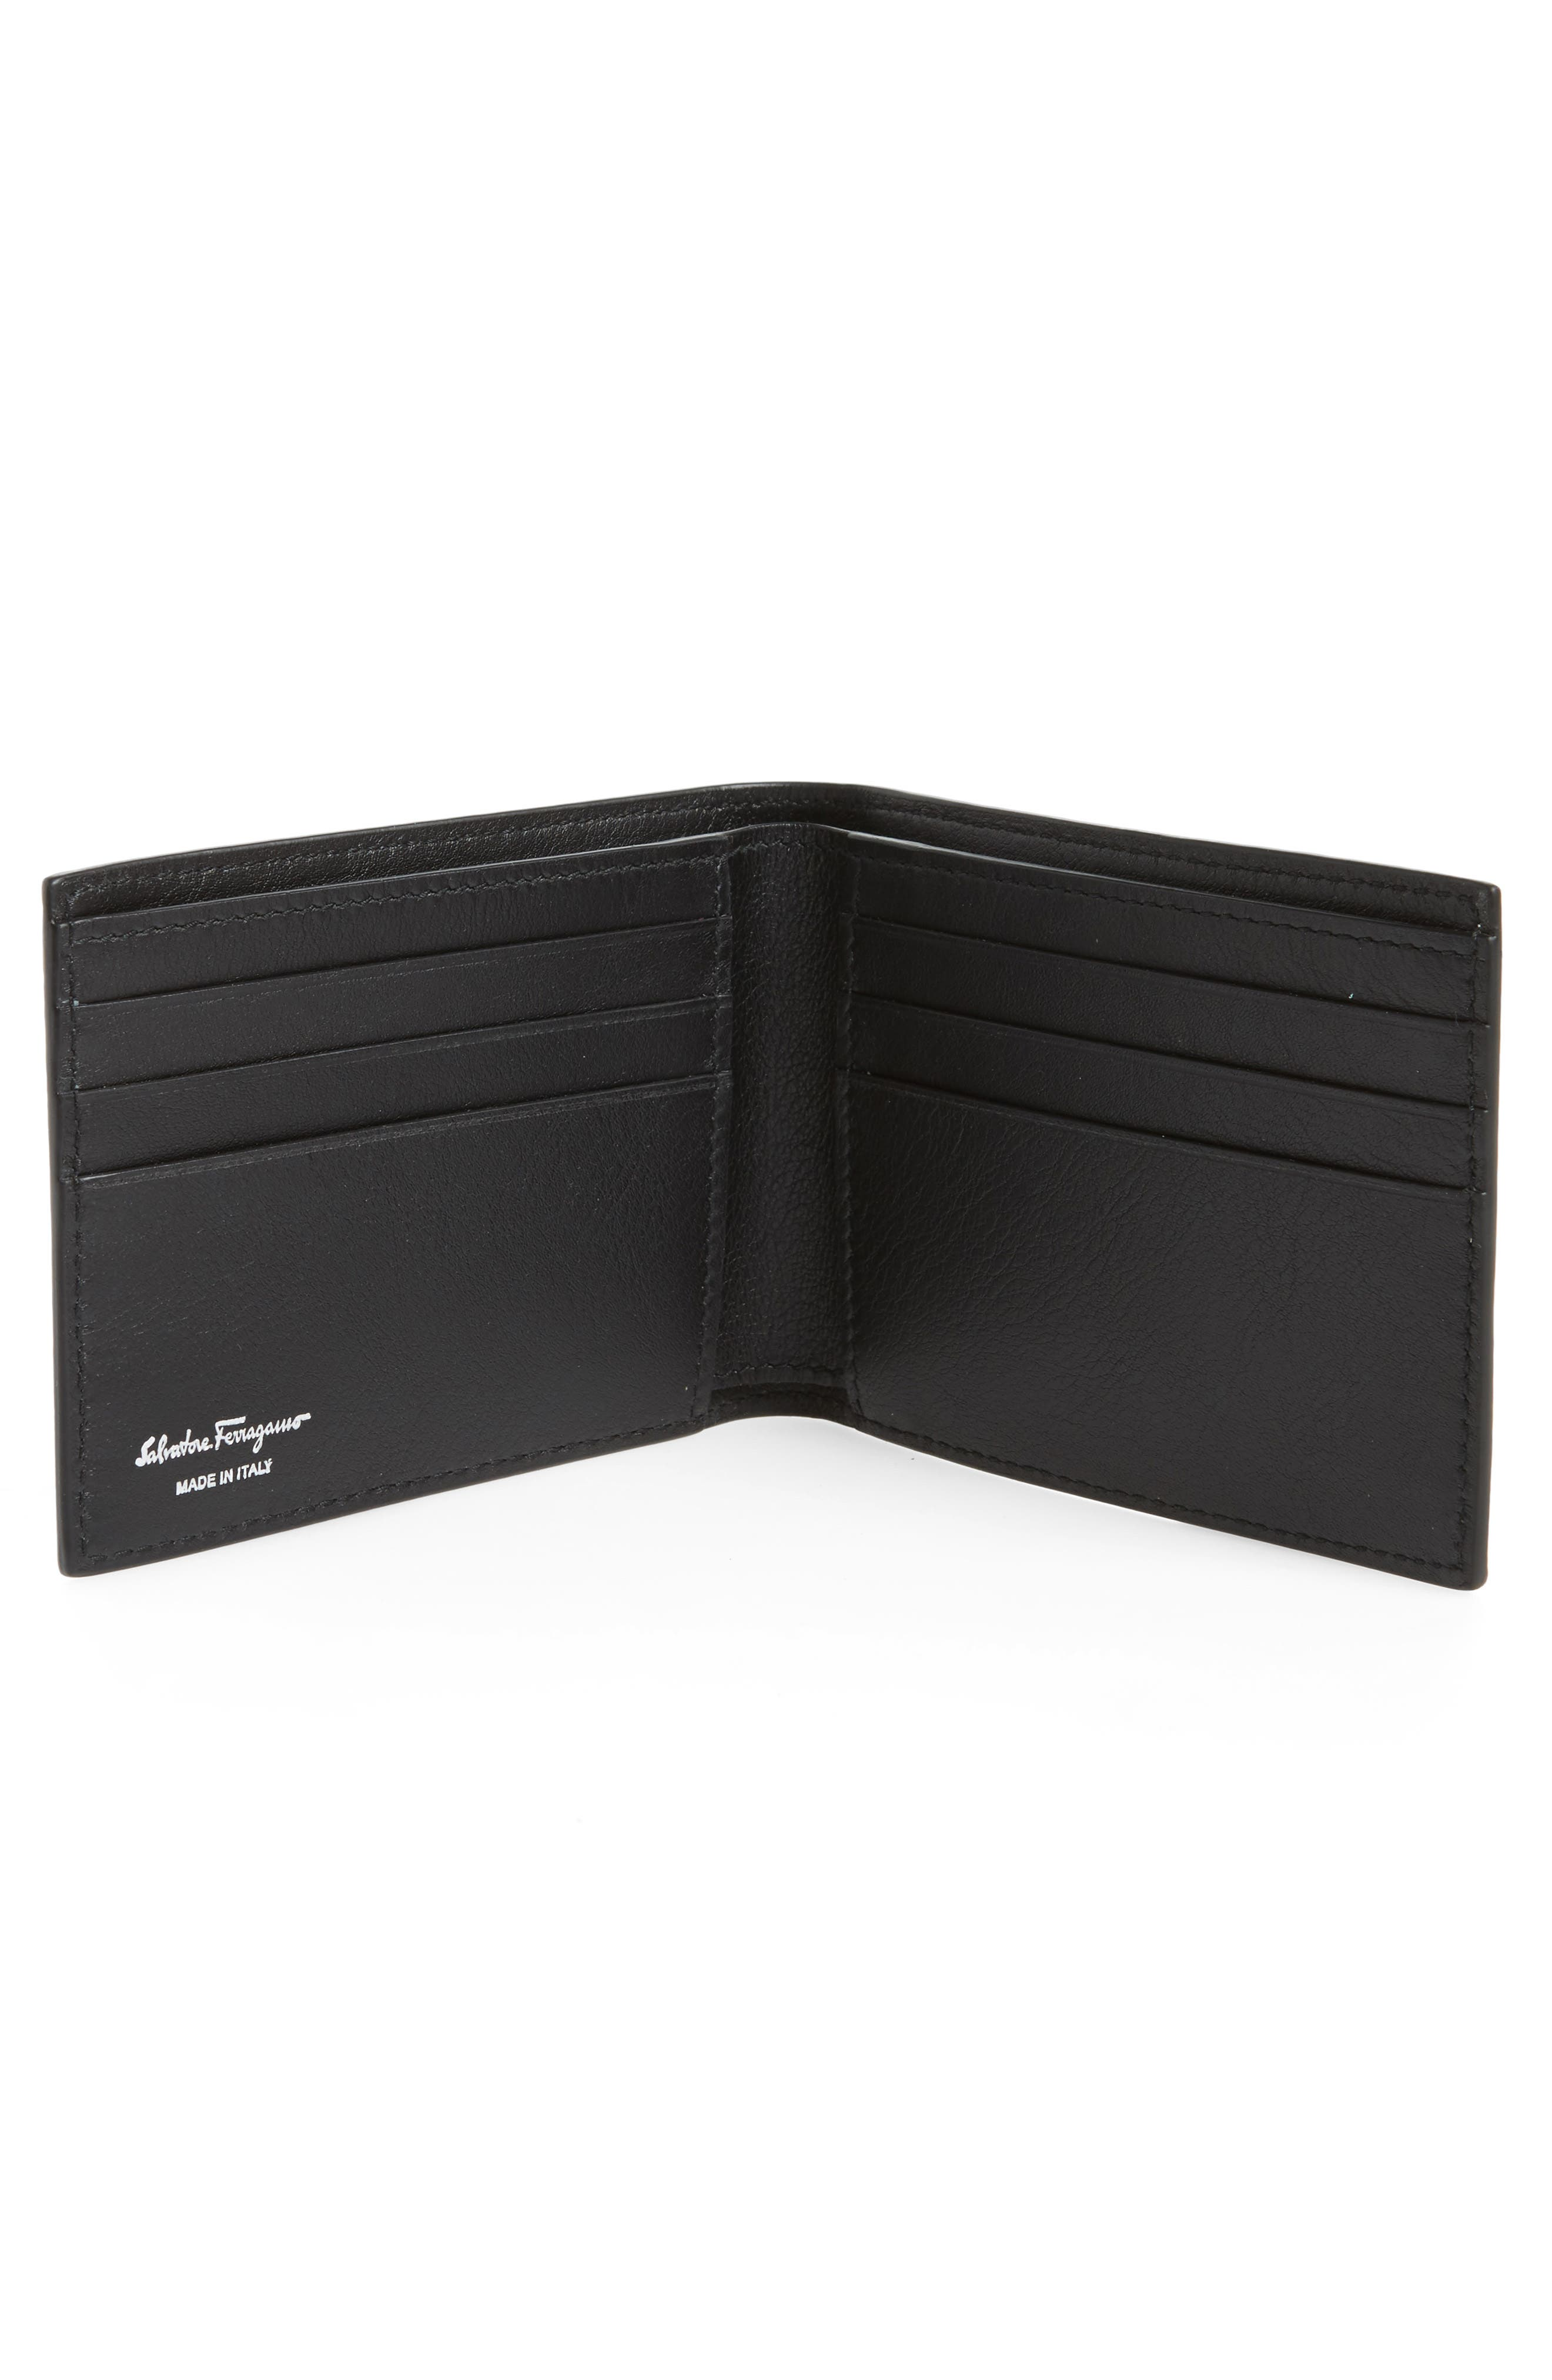 Leather Wallet,                             Alternate thumbnail 2, color,                             240